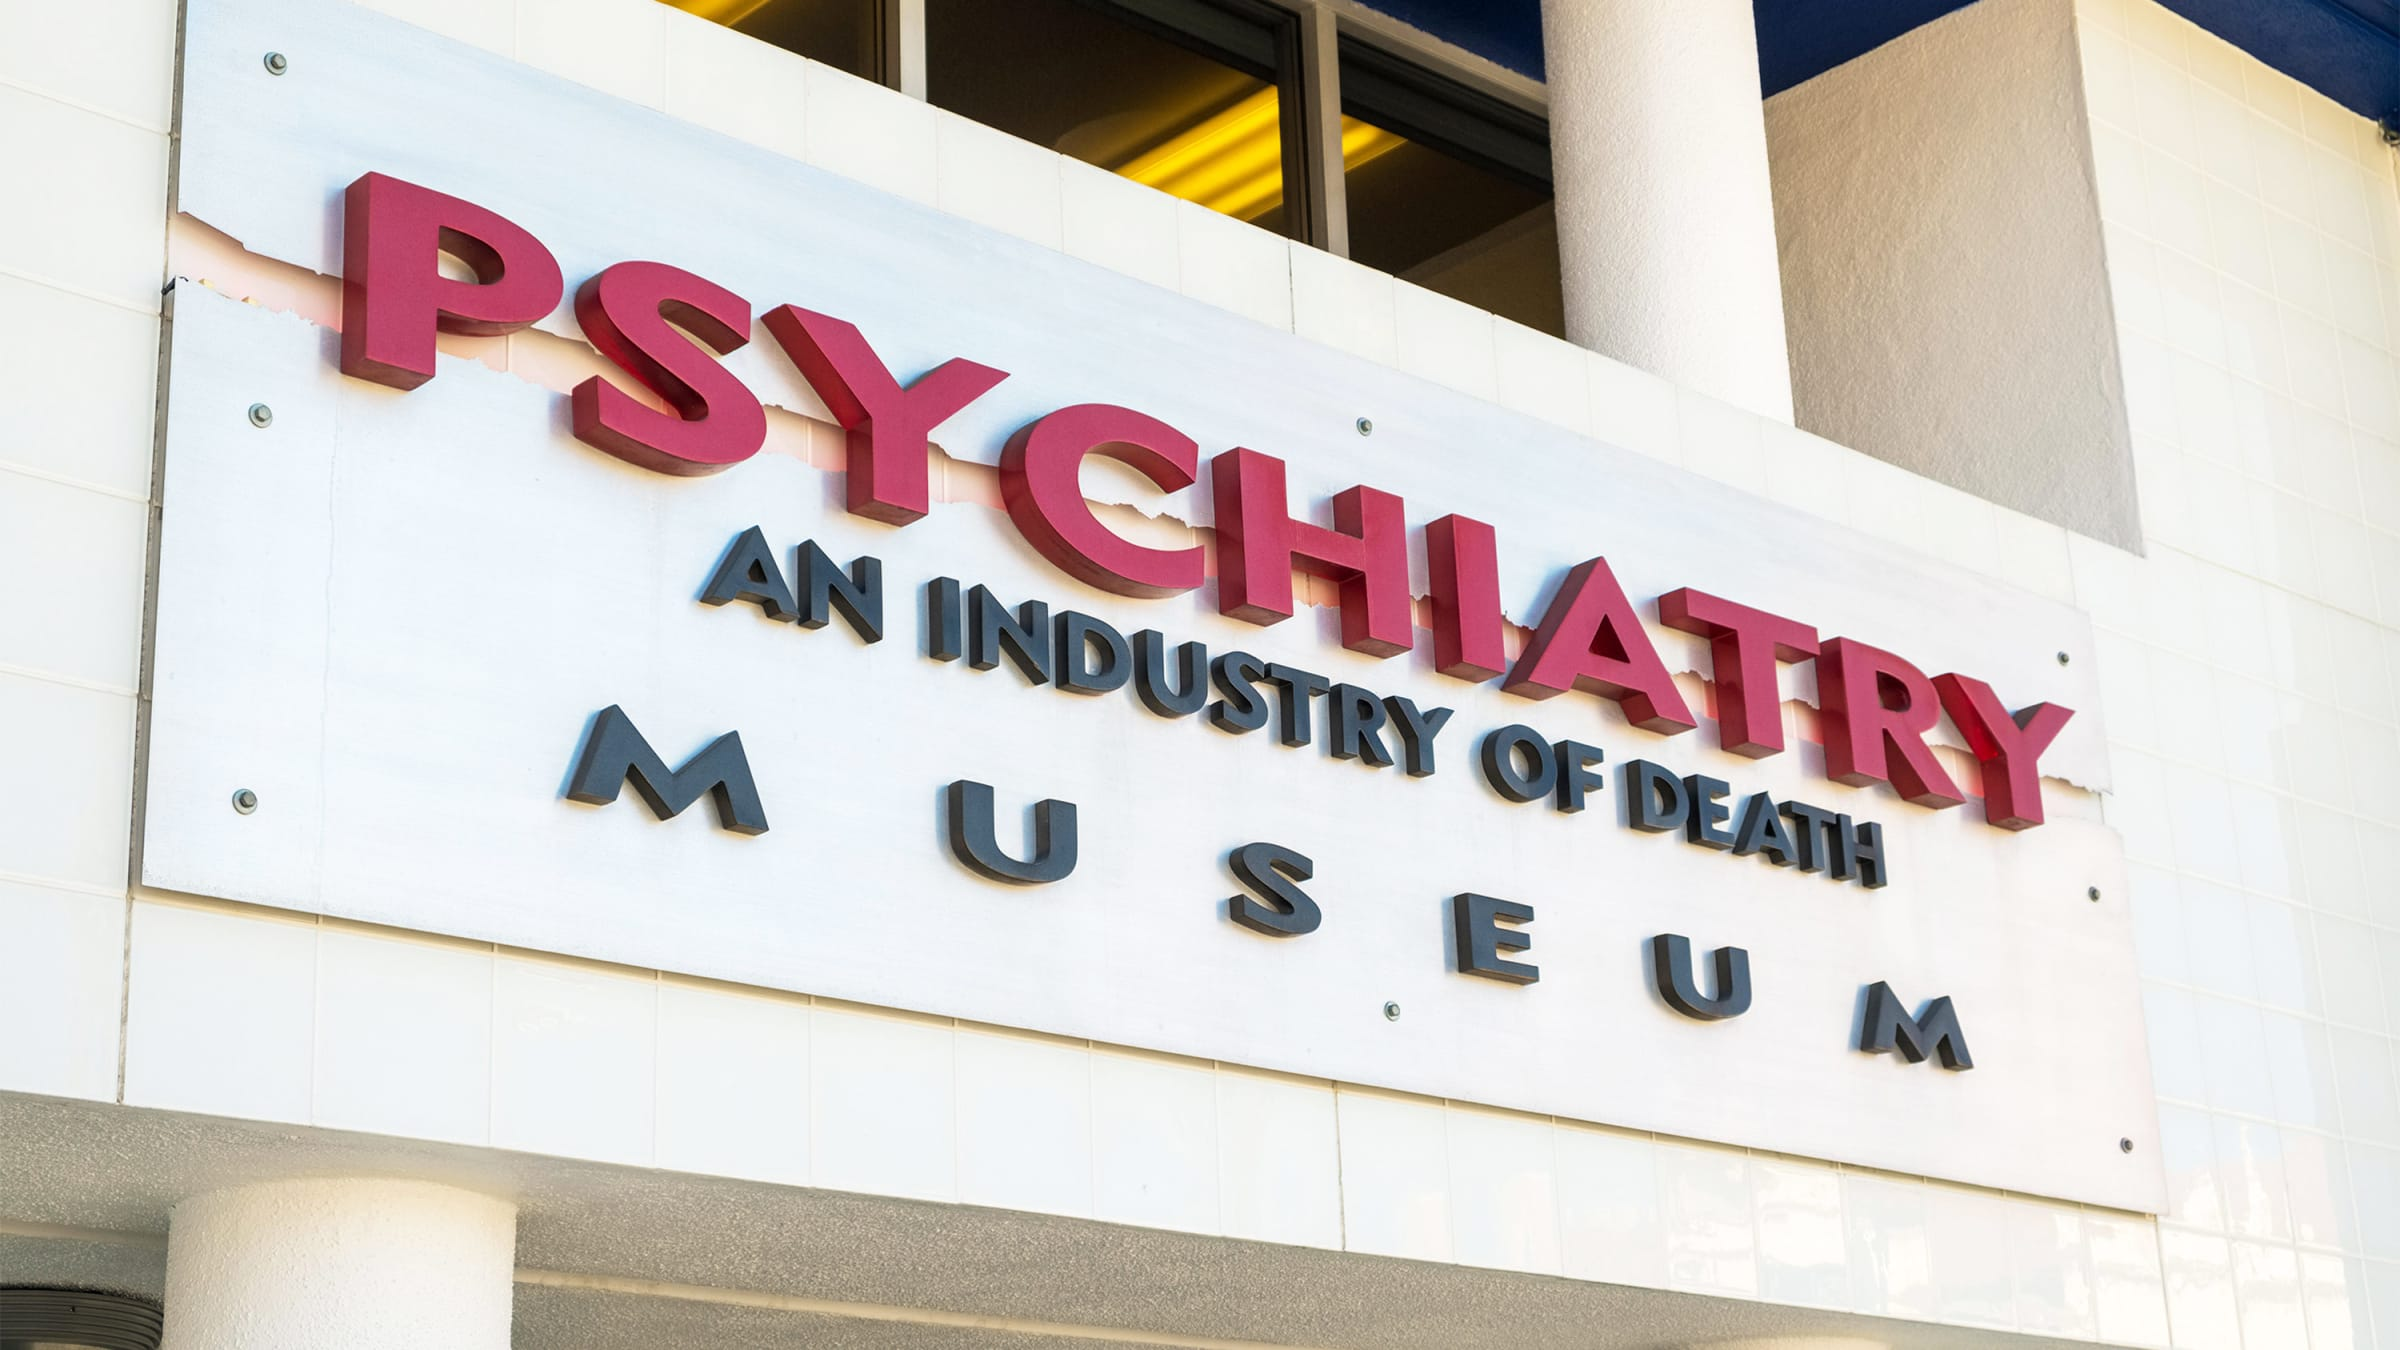 Inside Scientology's Secret Propaganda Museum Blaming 9/11 and the Holocaust on Psychiatry